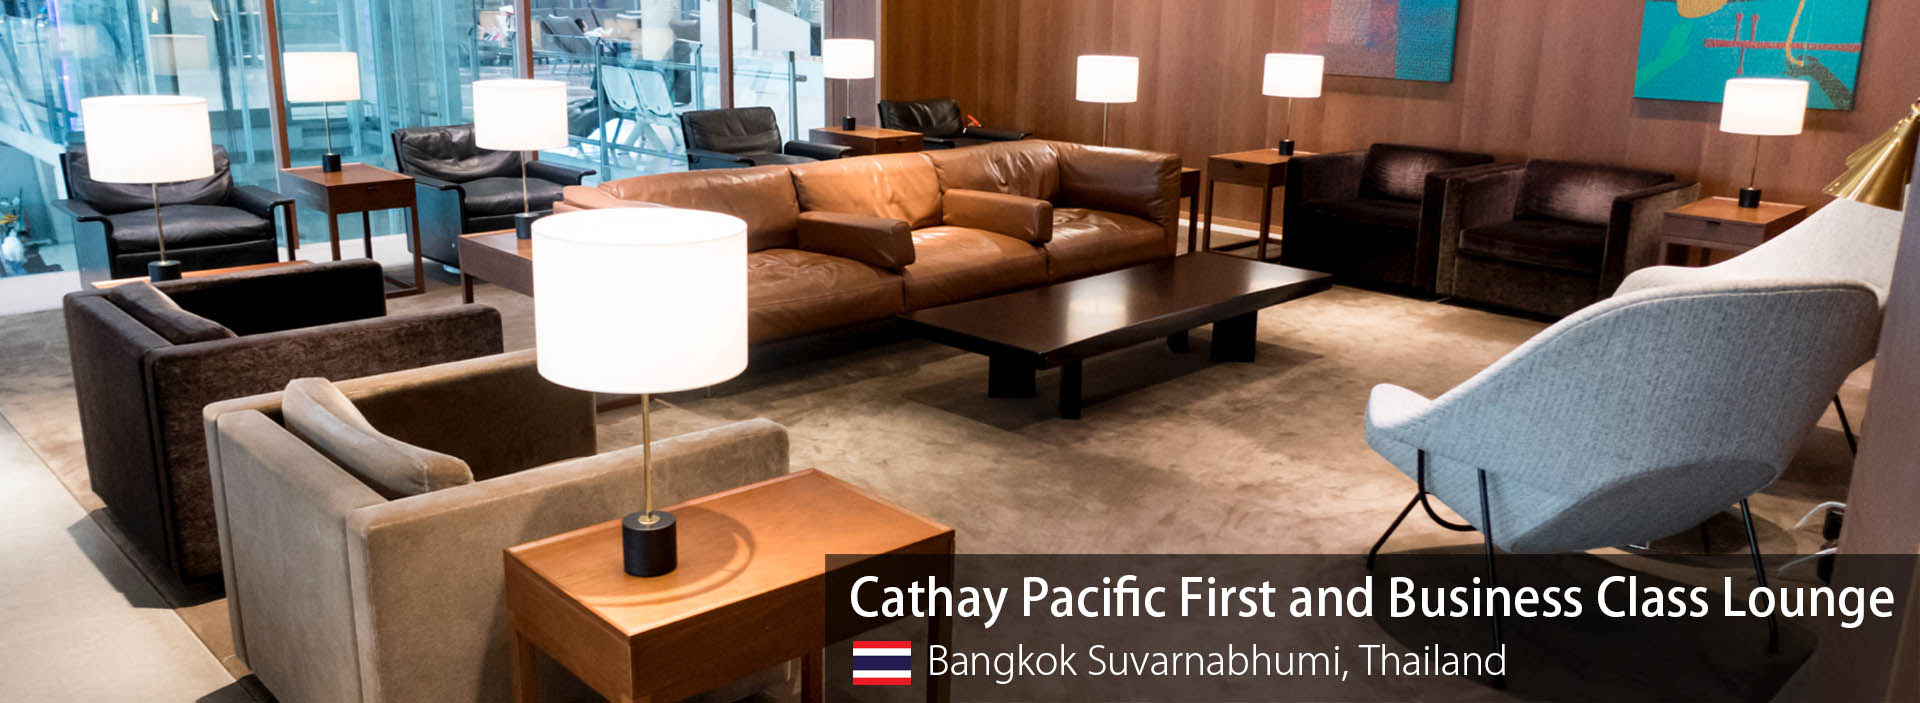 Lounge Review: Cathay Pacific First and Business Class Lounge at Bangkok Suvarnabhumi